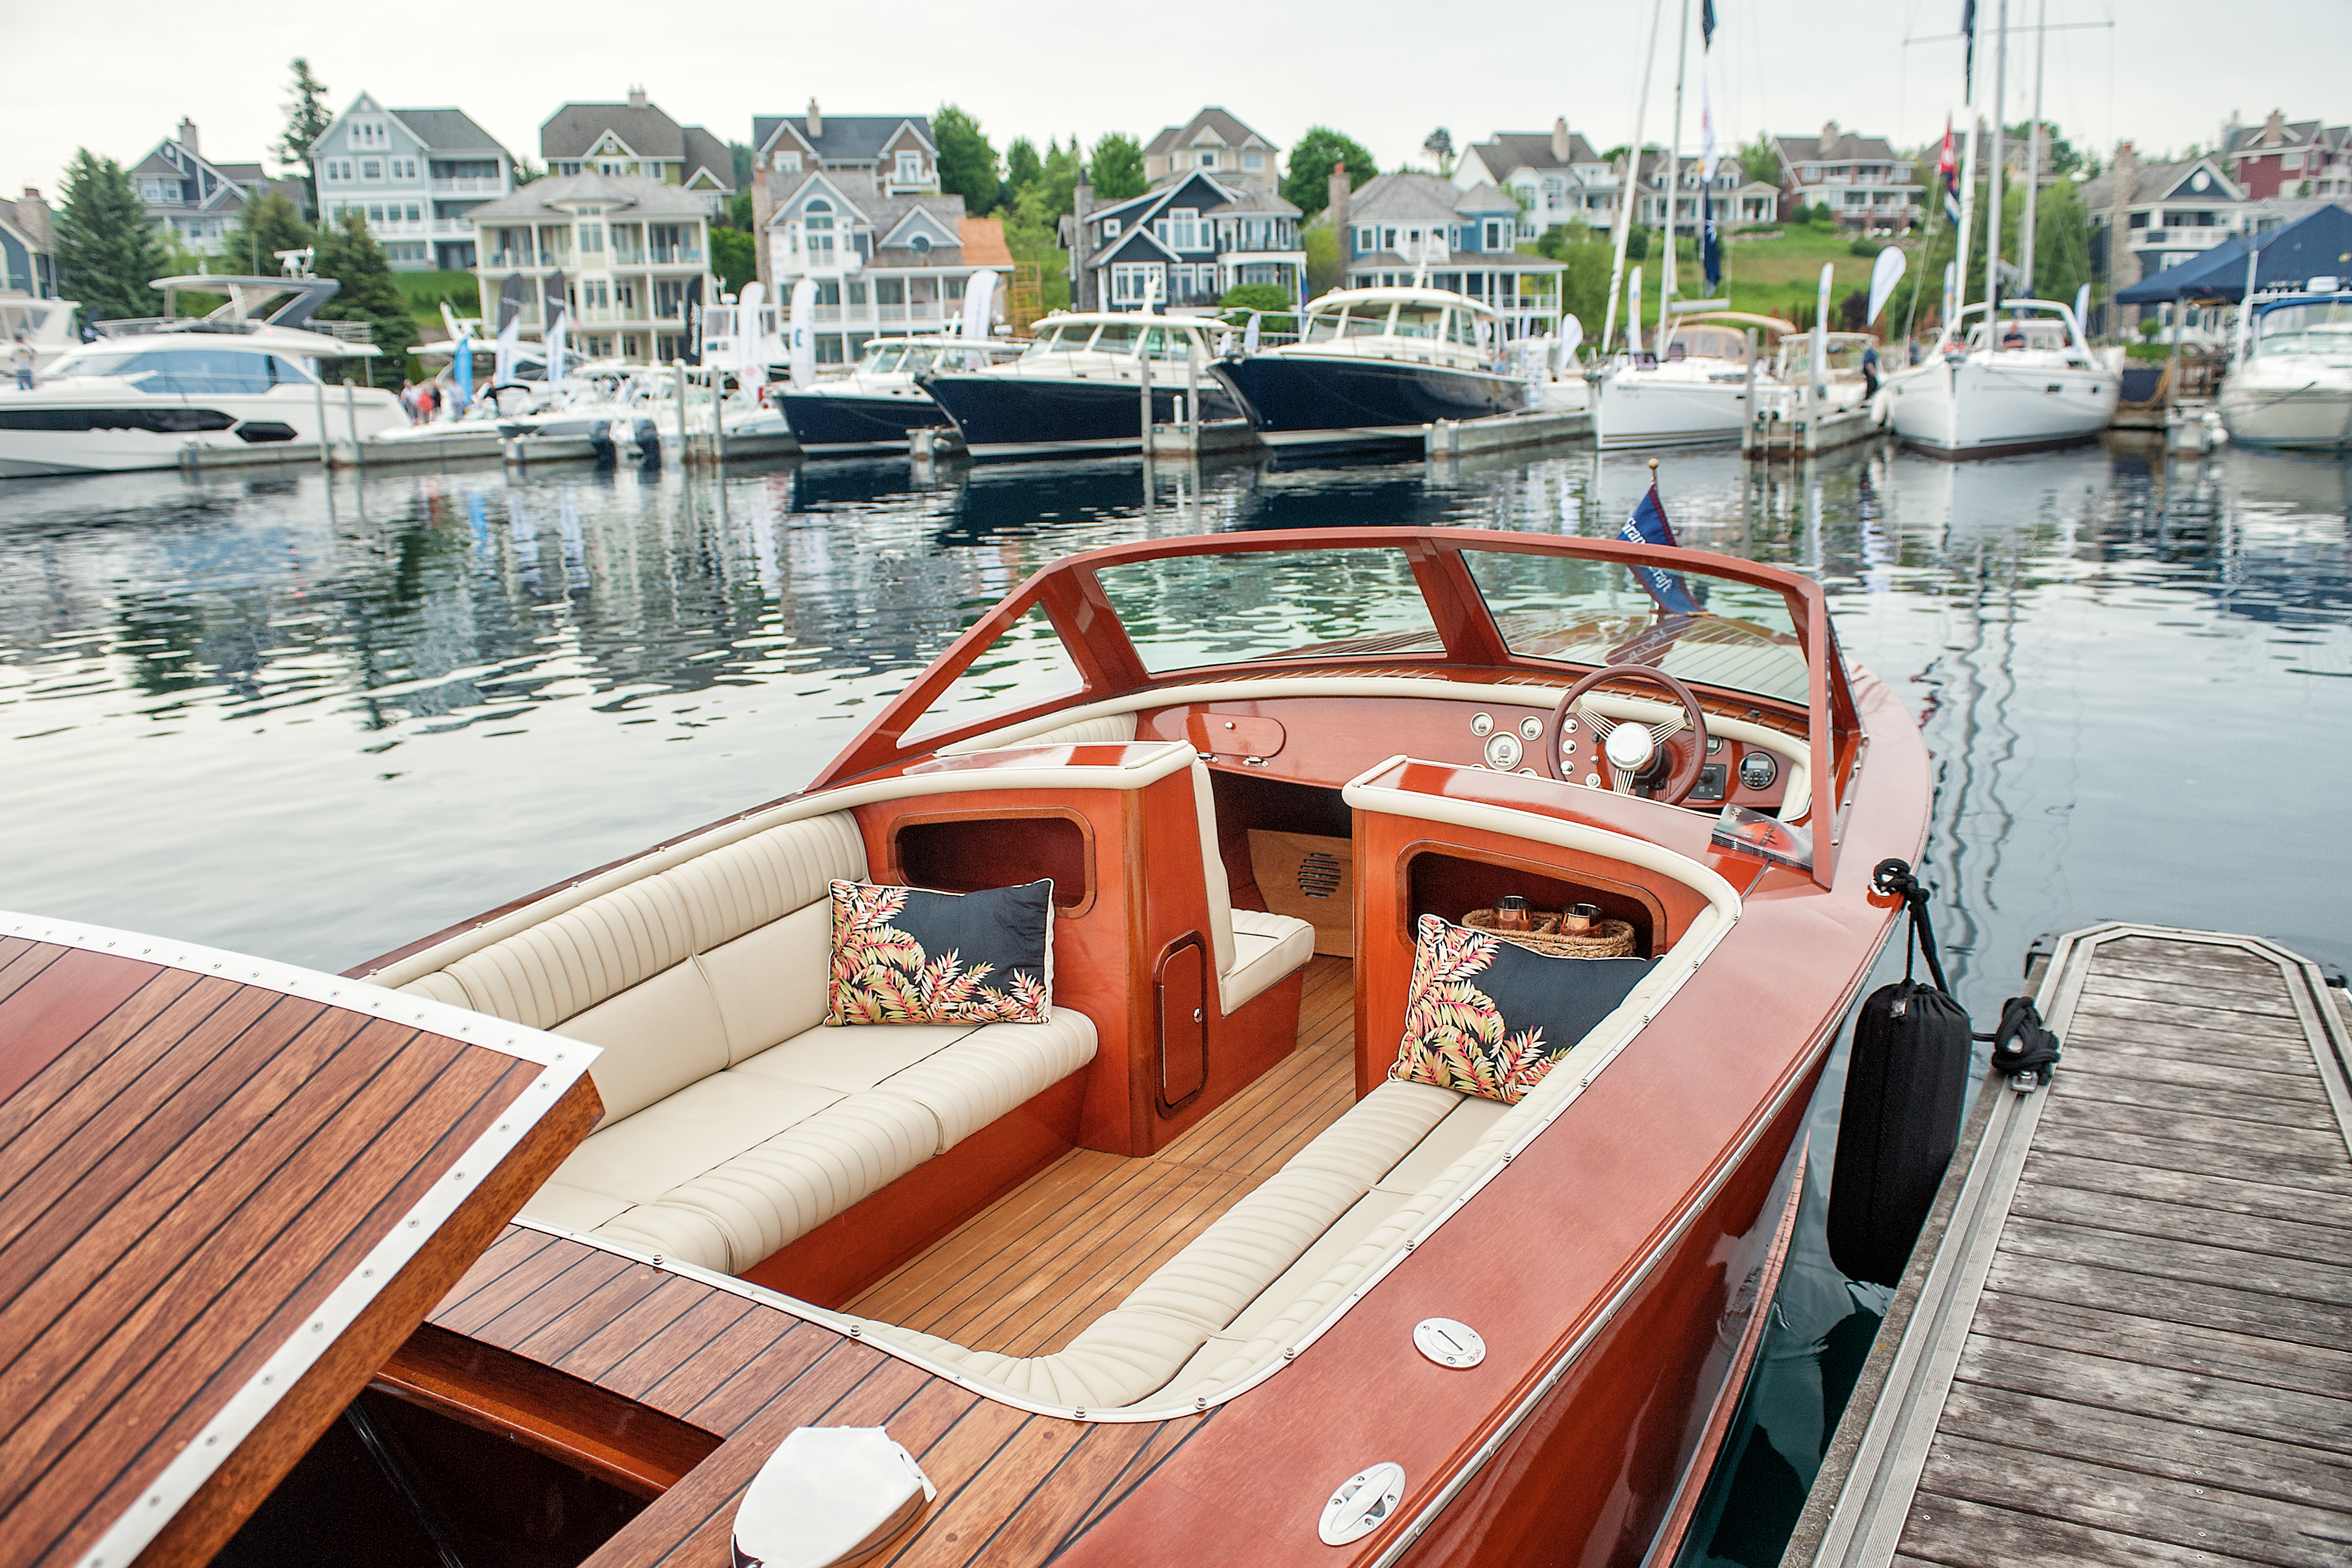 A 2018 Boaters' Choice Marina by Marinas.com